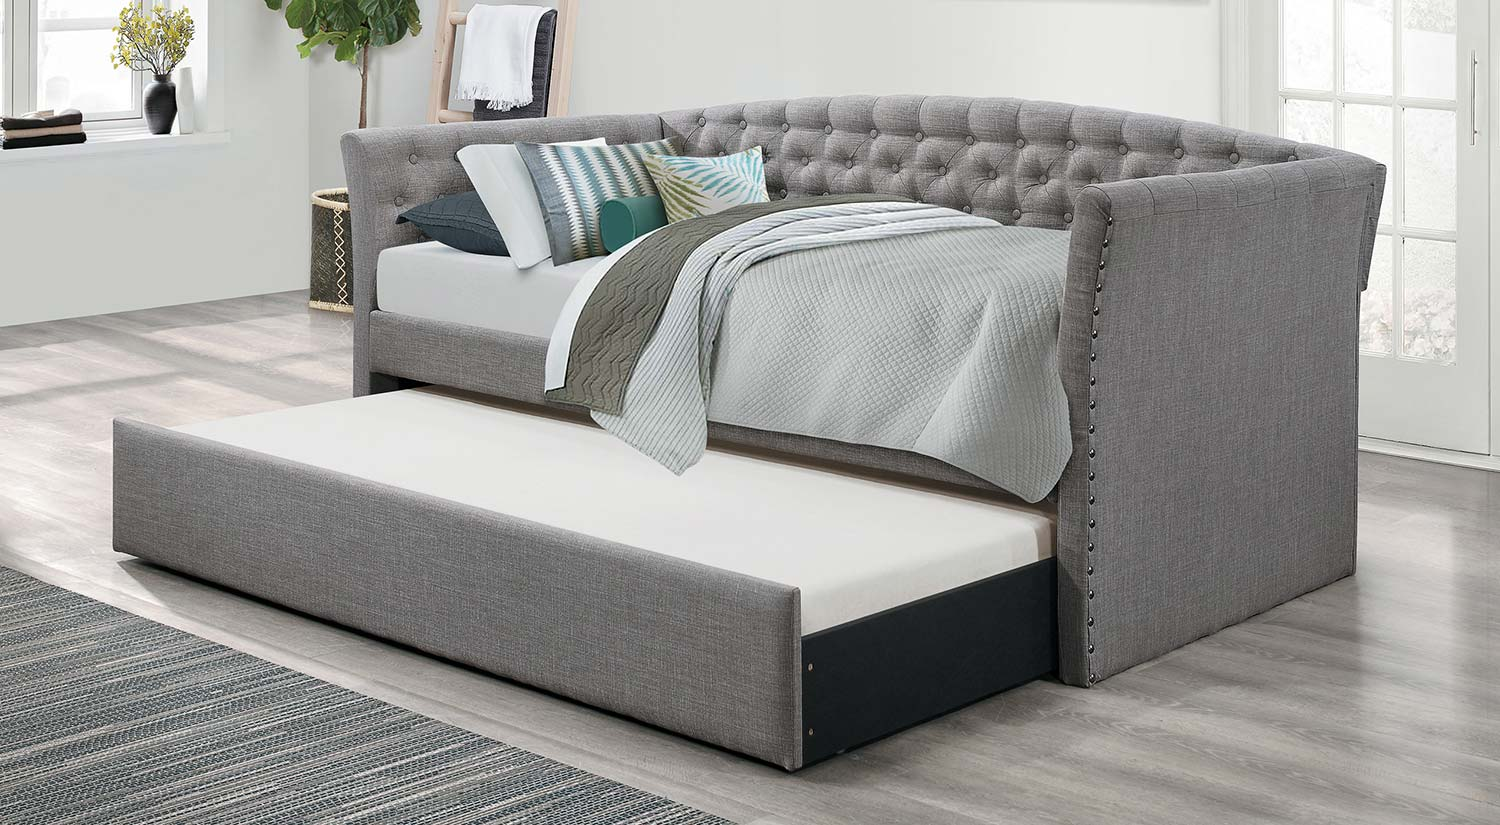 Homelegance Norwood Daybed with Trundle - Gray